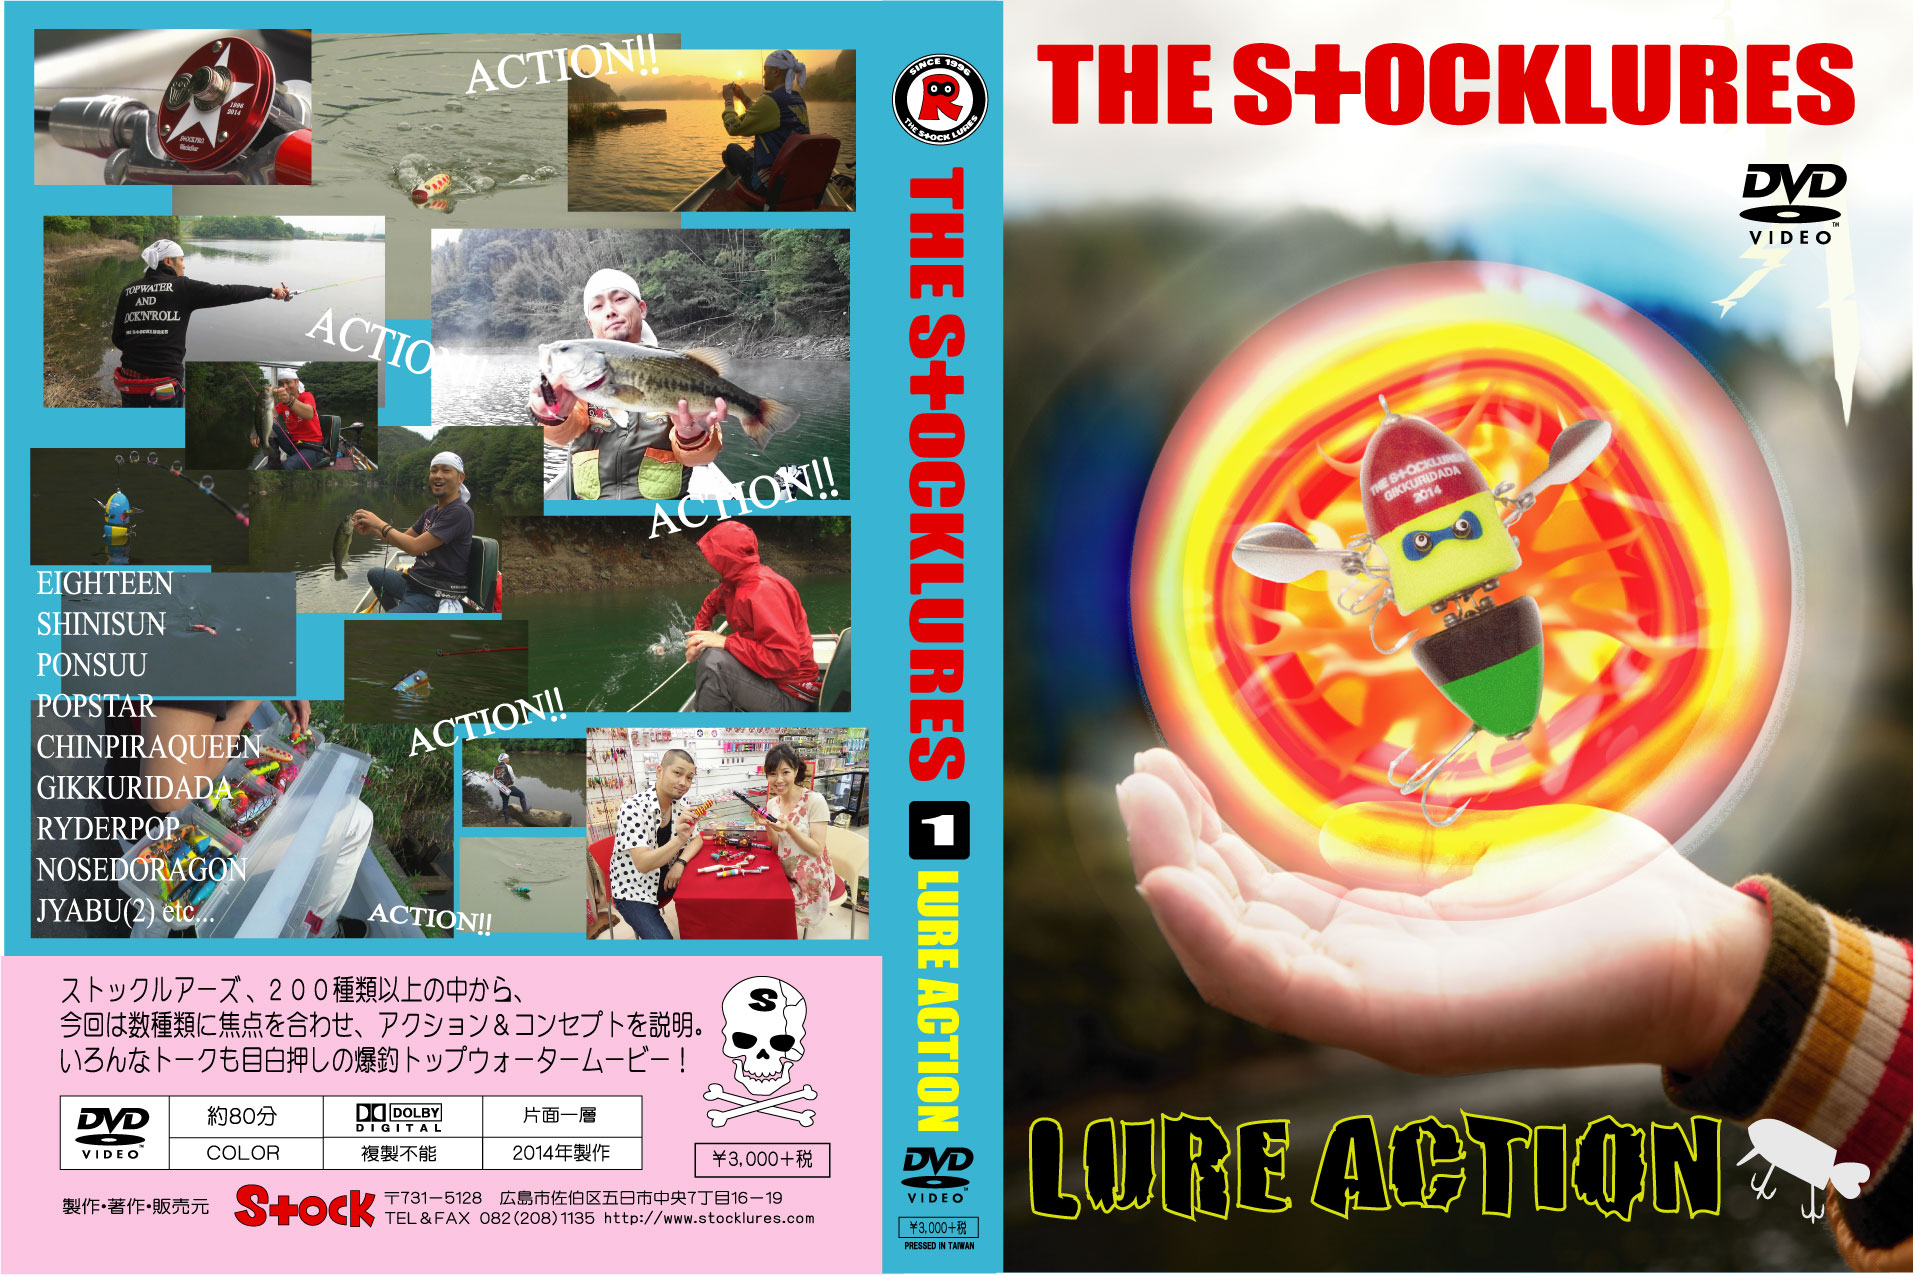 STOCKLURES(LUREACTION)2014.jpg